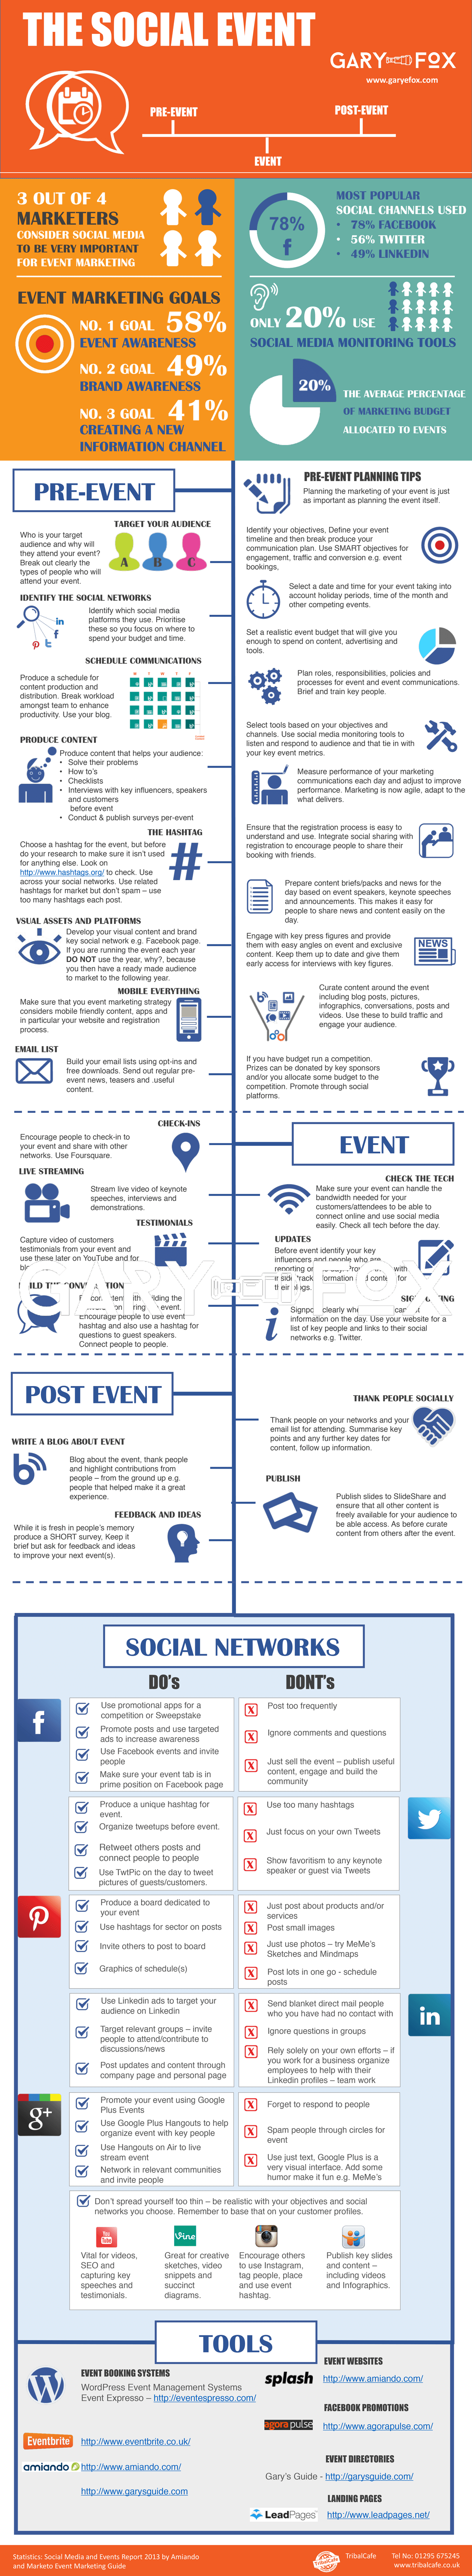 social event infographic